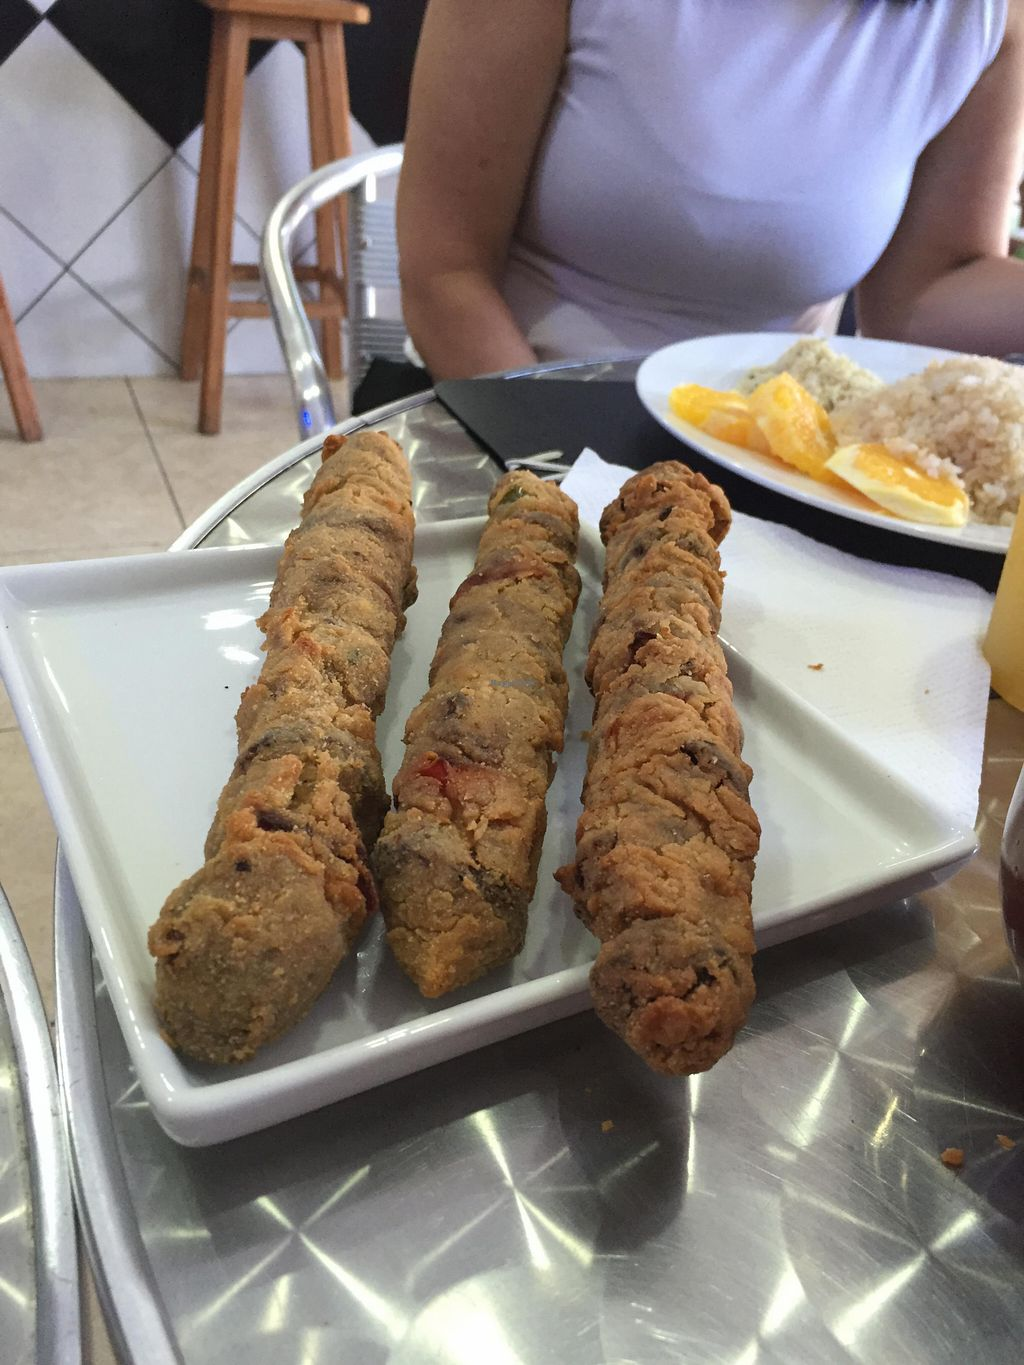 """Photo of Vegan & Co  by <a href=""""/members/profile/Paolla"""">Paolla</a> <br/>Breaded soy meat with vegetables <br/> August 15, 2015  - <a href='/contact/abuse/image/61766/113697'>Report</a>"""